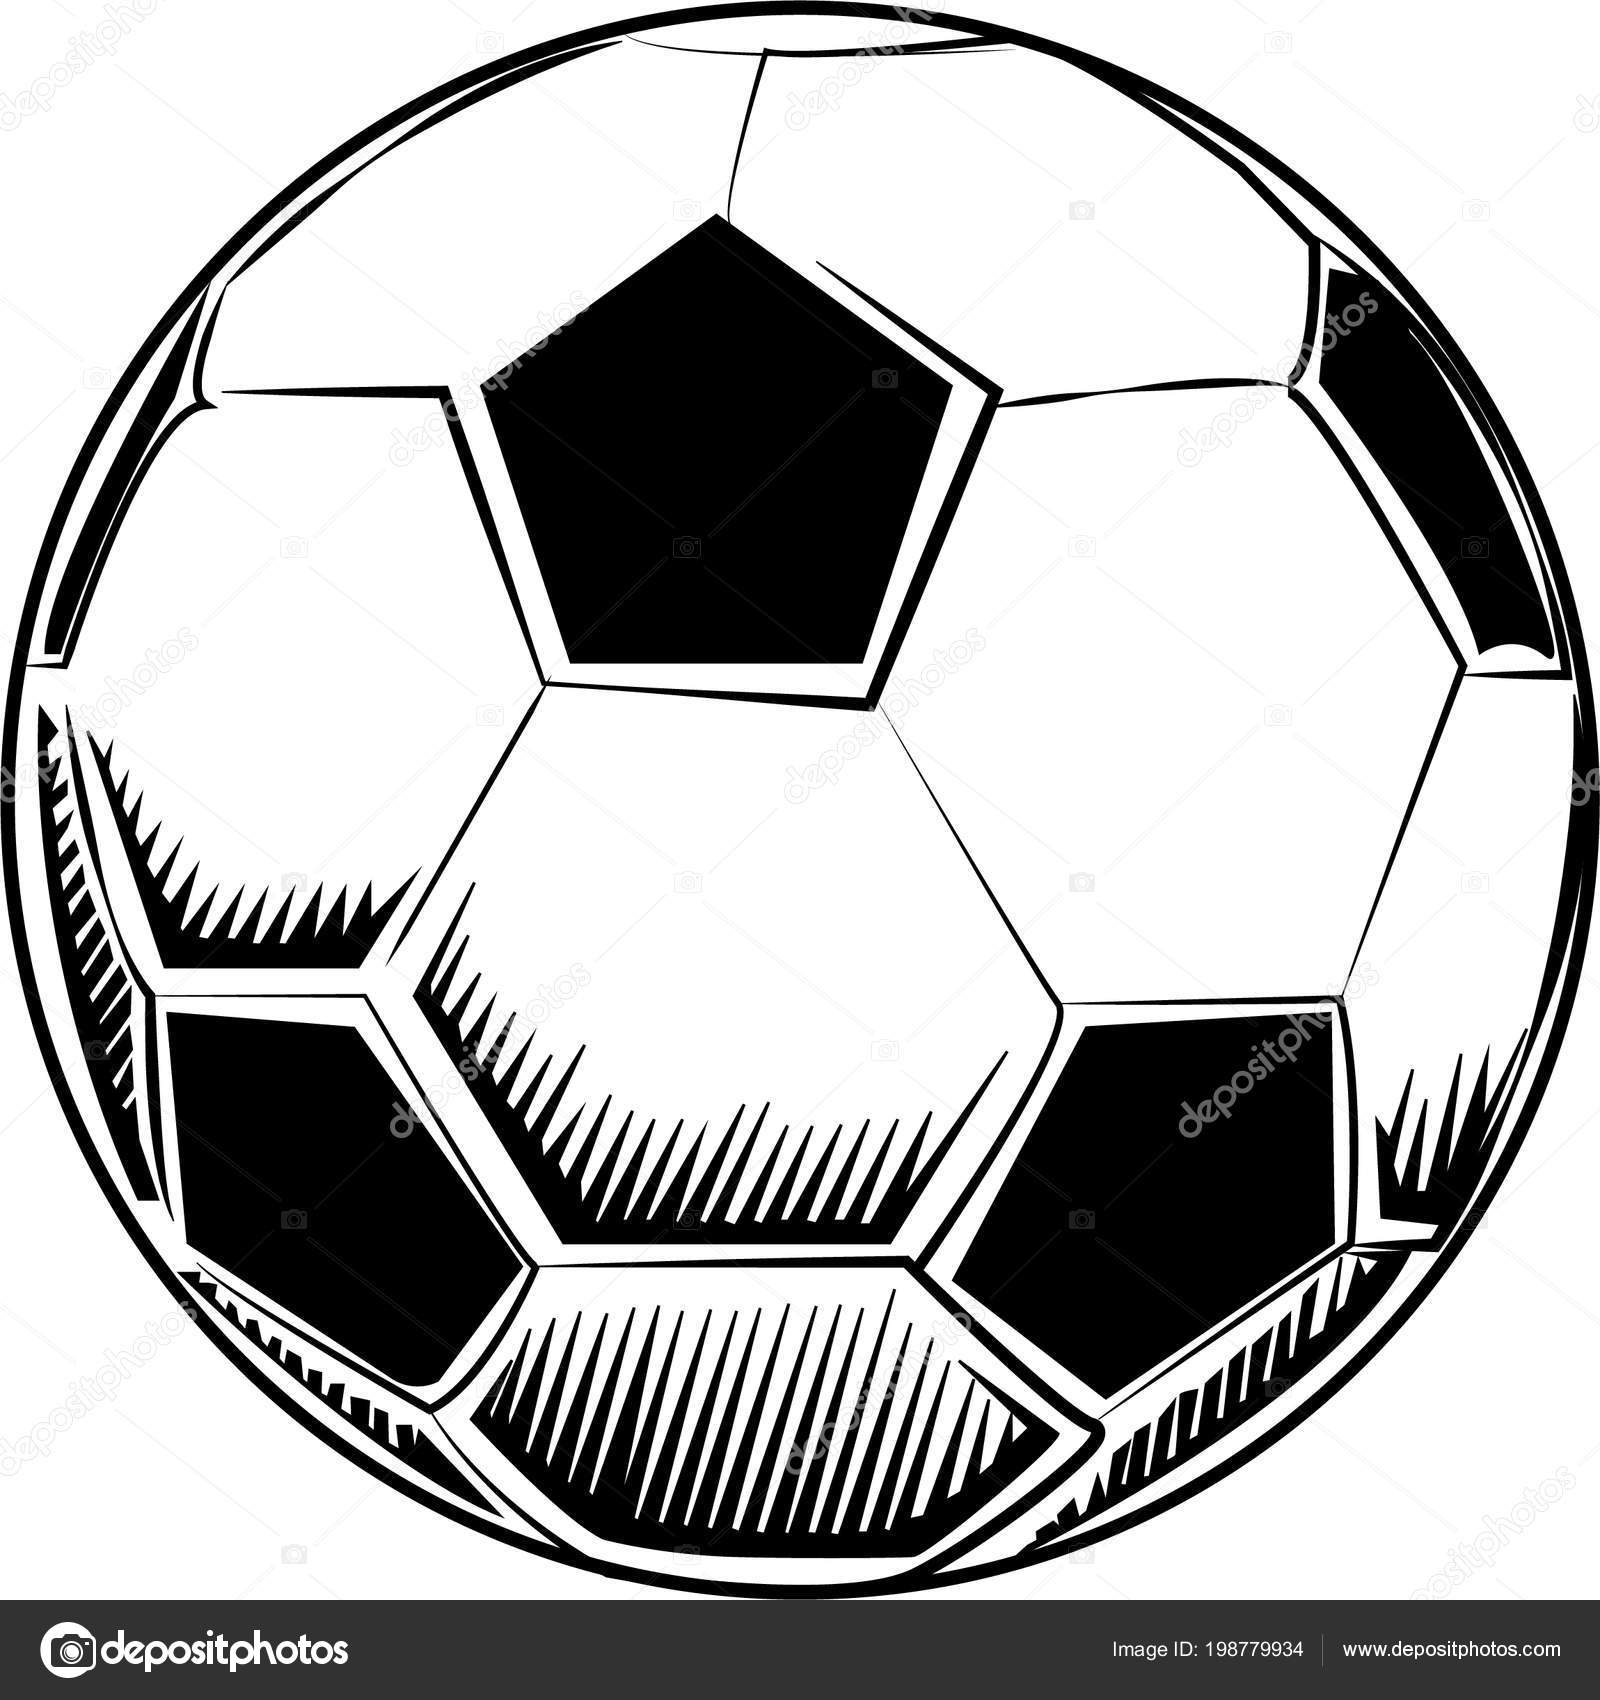 Dessin vectoriel ballon football image vectorielle gurcells 198779934 - Dessin de ballon de foot ...